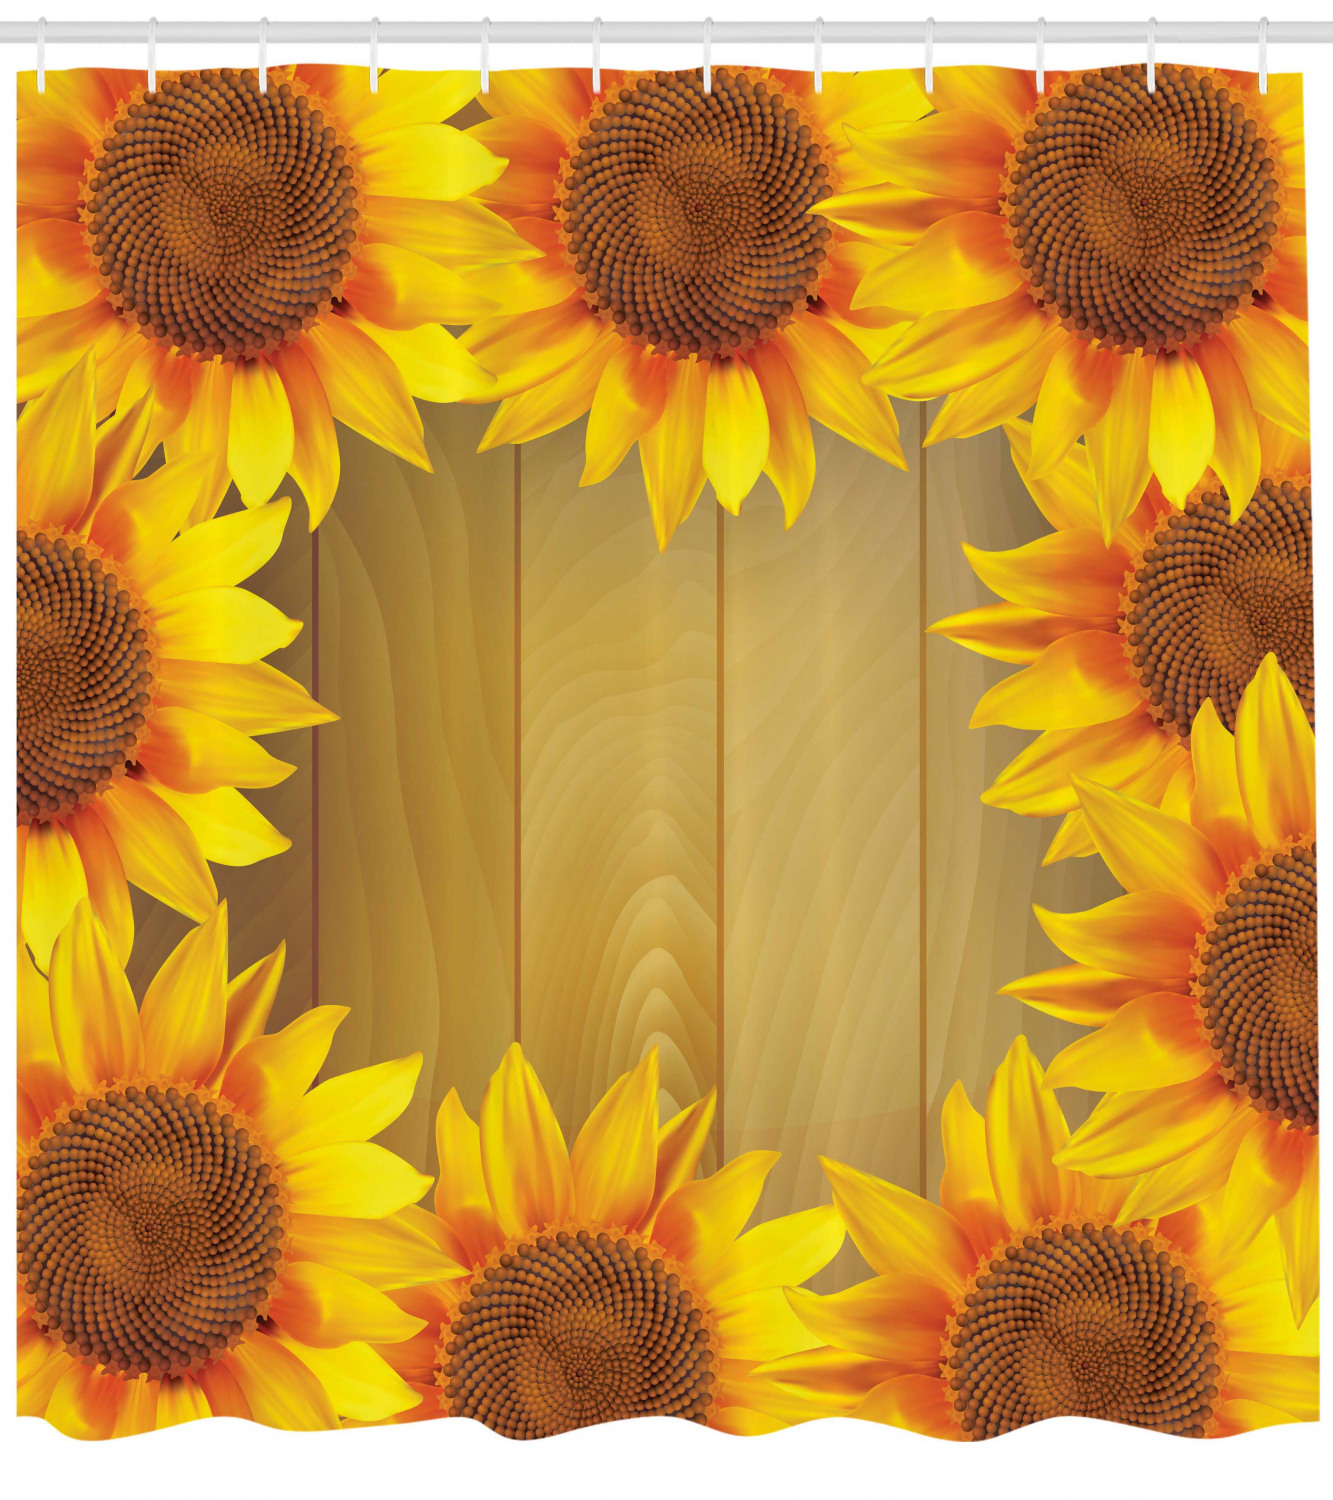 Sunflower Shower Curtain Sunflower Arranged In A Circle On A Wooden Background Flower Frame Illustration Fabric Bathroom Set With Hooks Brown